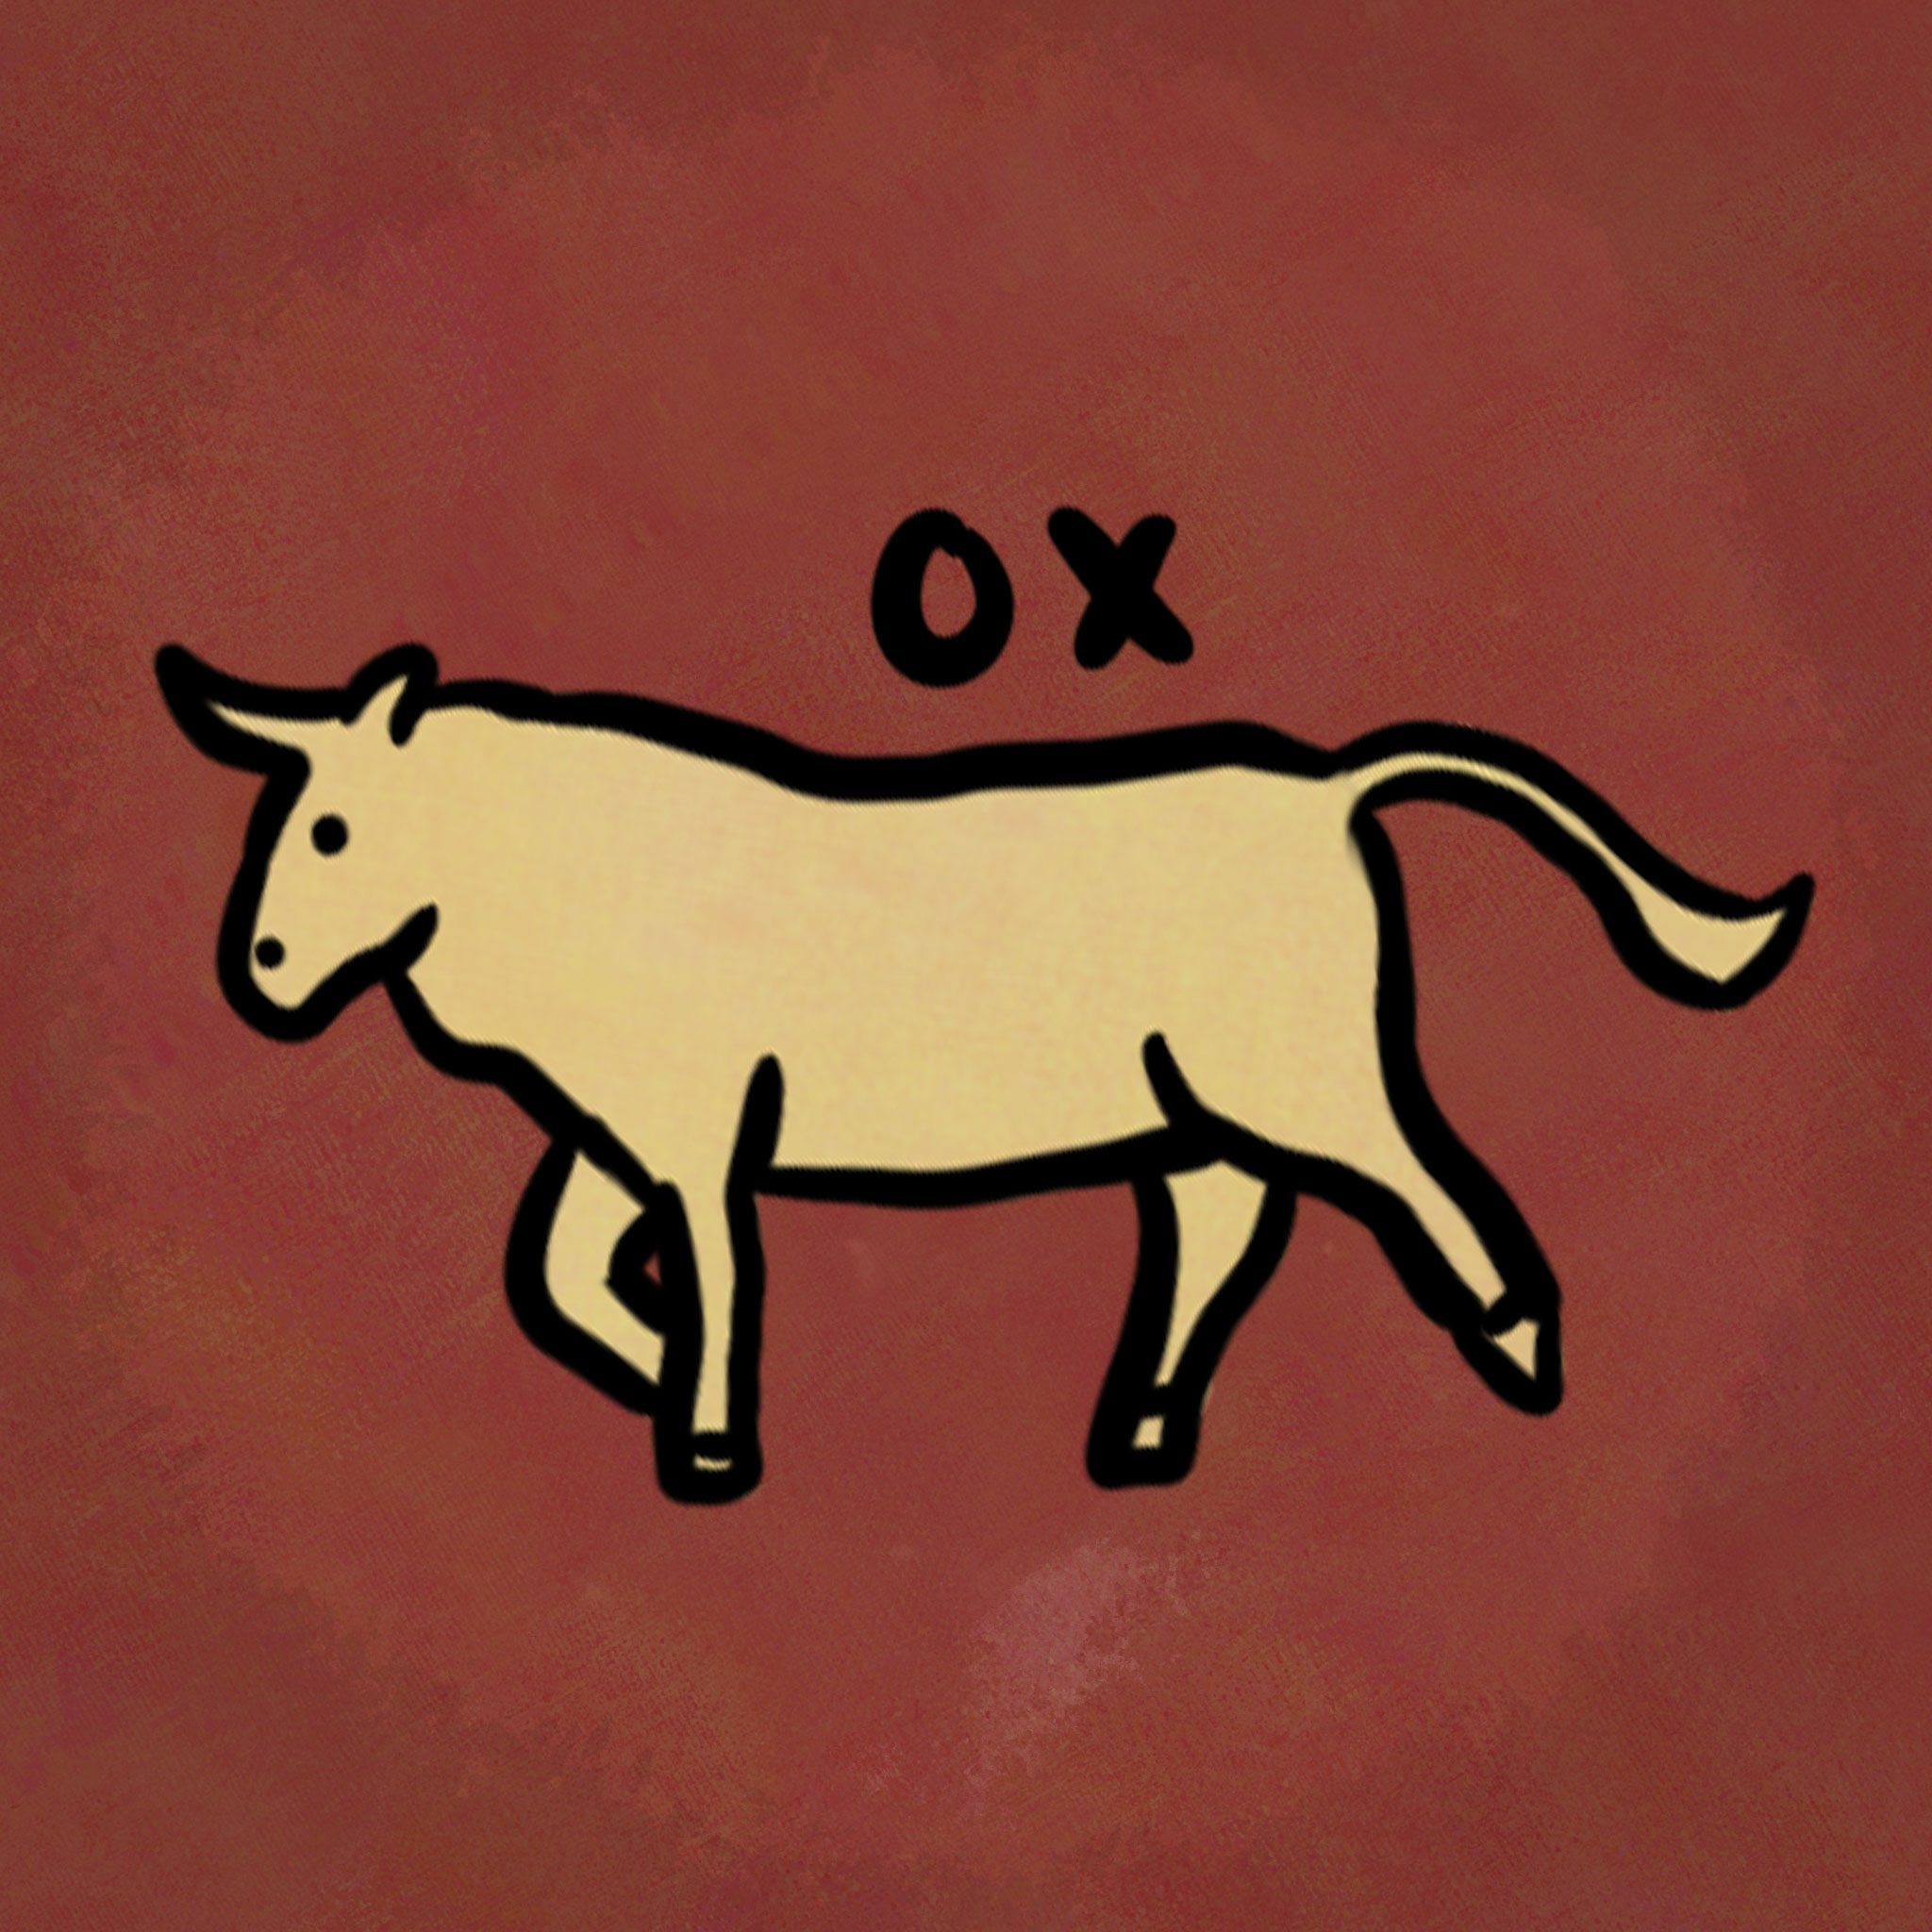 Illustration of animal from the chinese zodiac: Ox